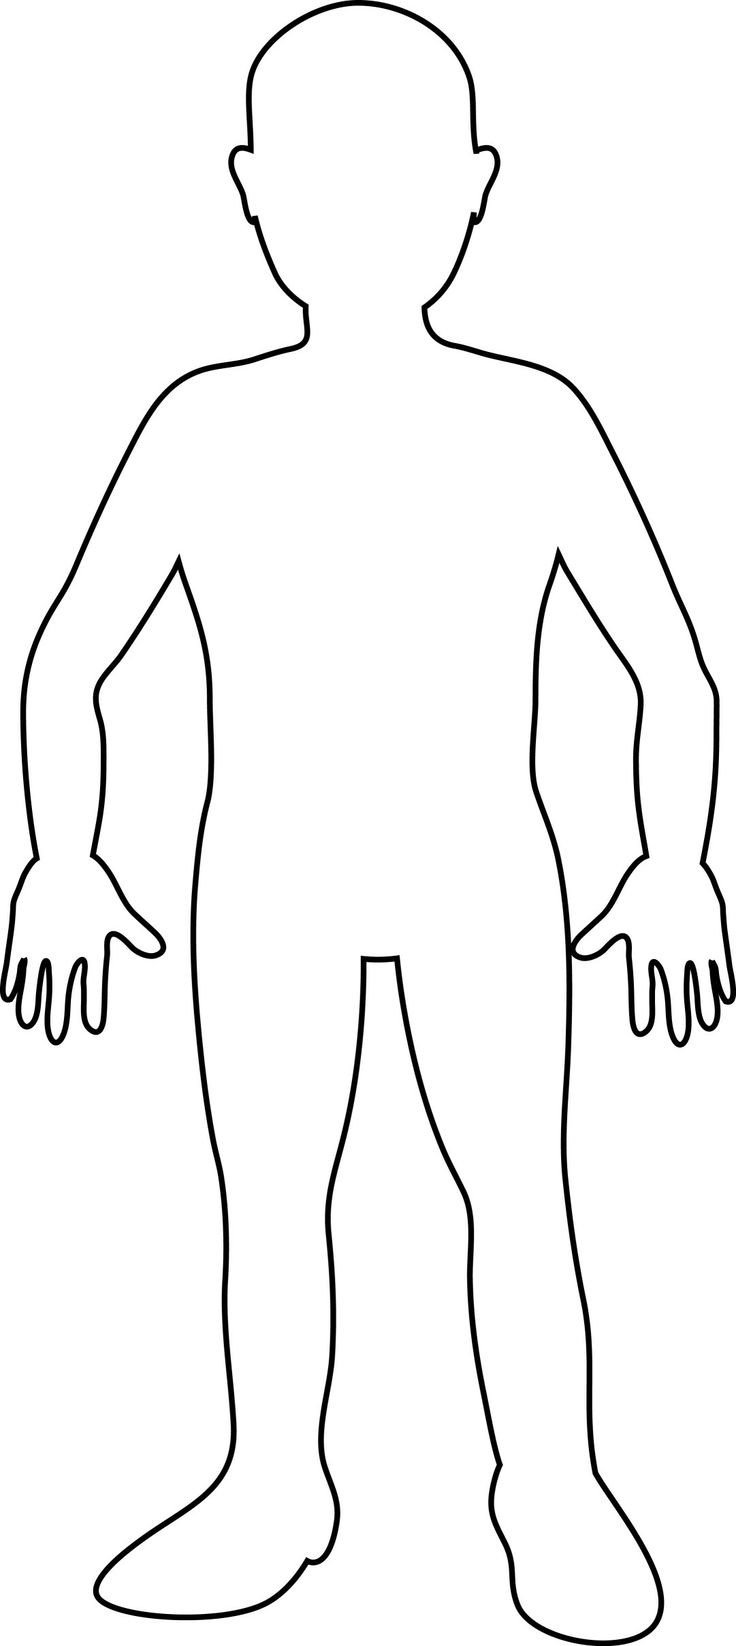 Outline Of A Human Human Body Outline Printable Cliparts